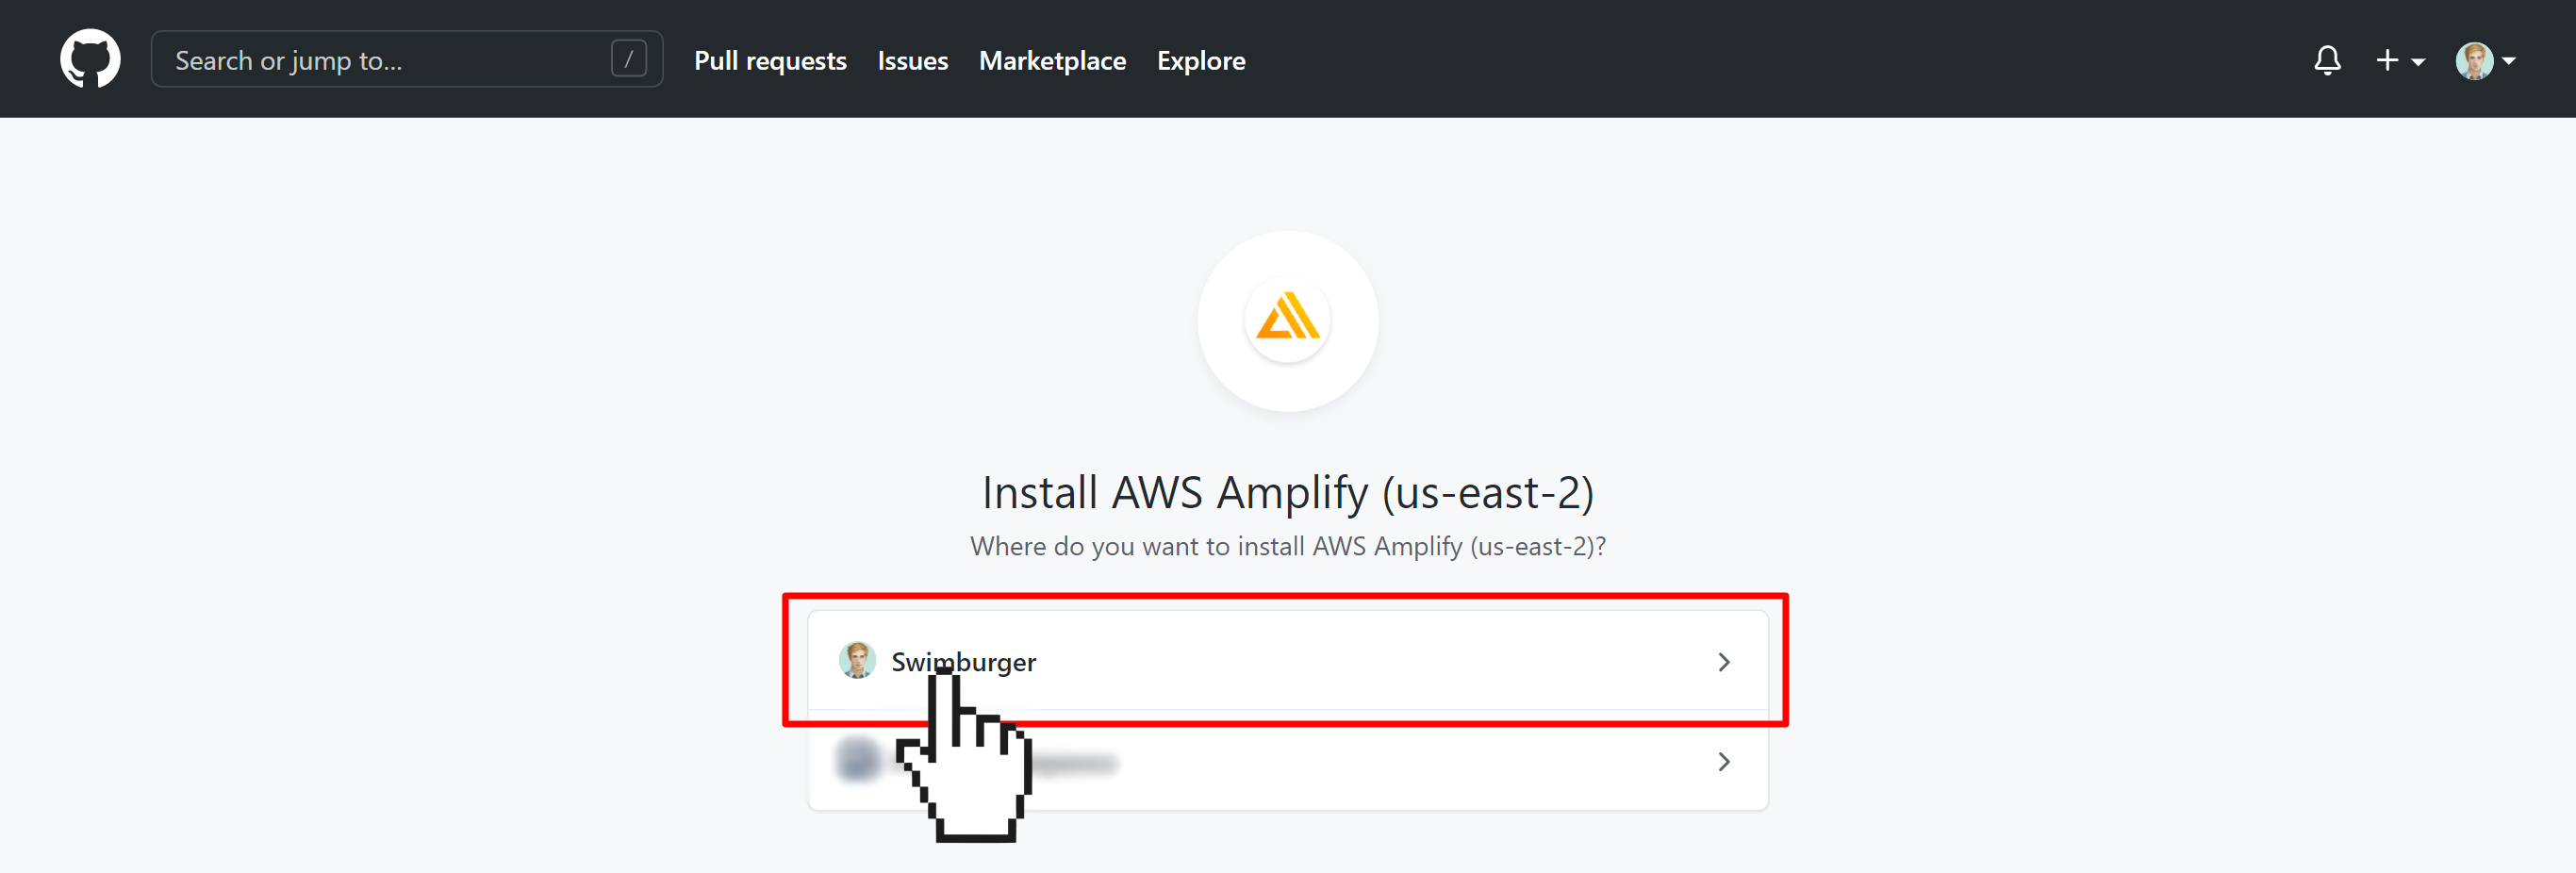 GitHub asking which organization to install the AWS Amplify GitHub app for